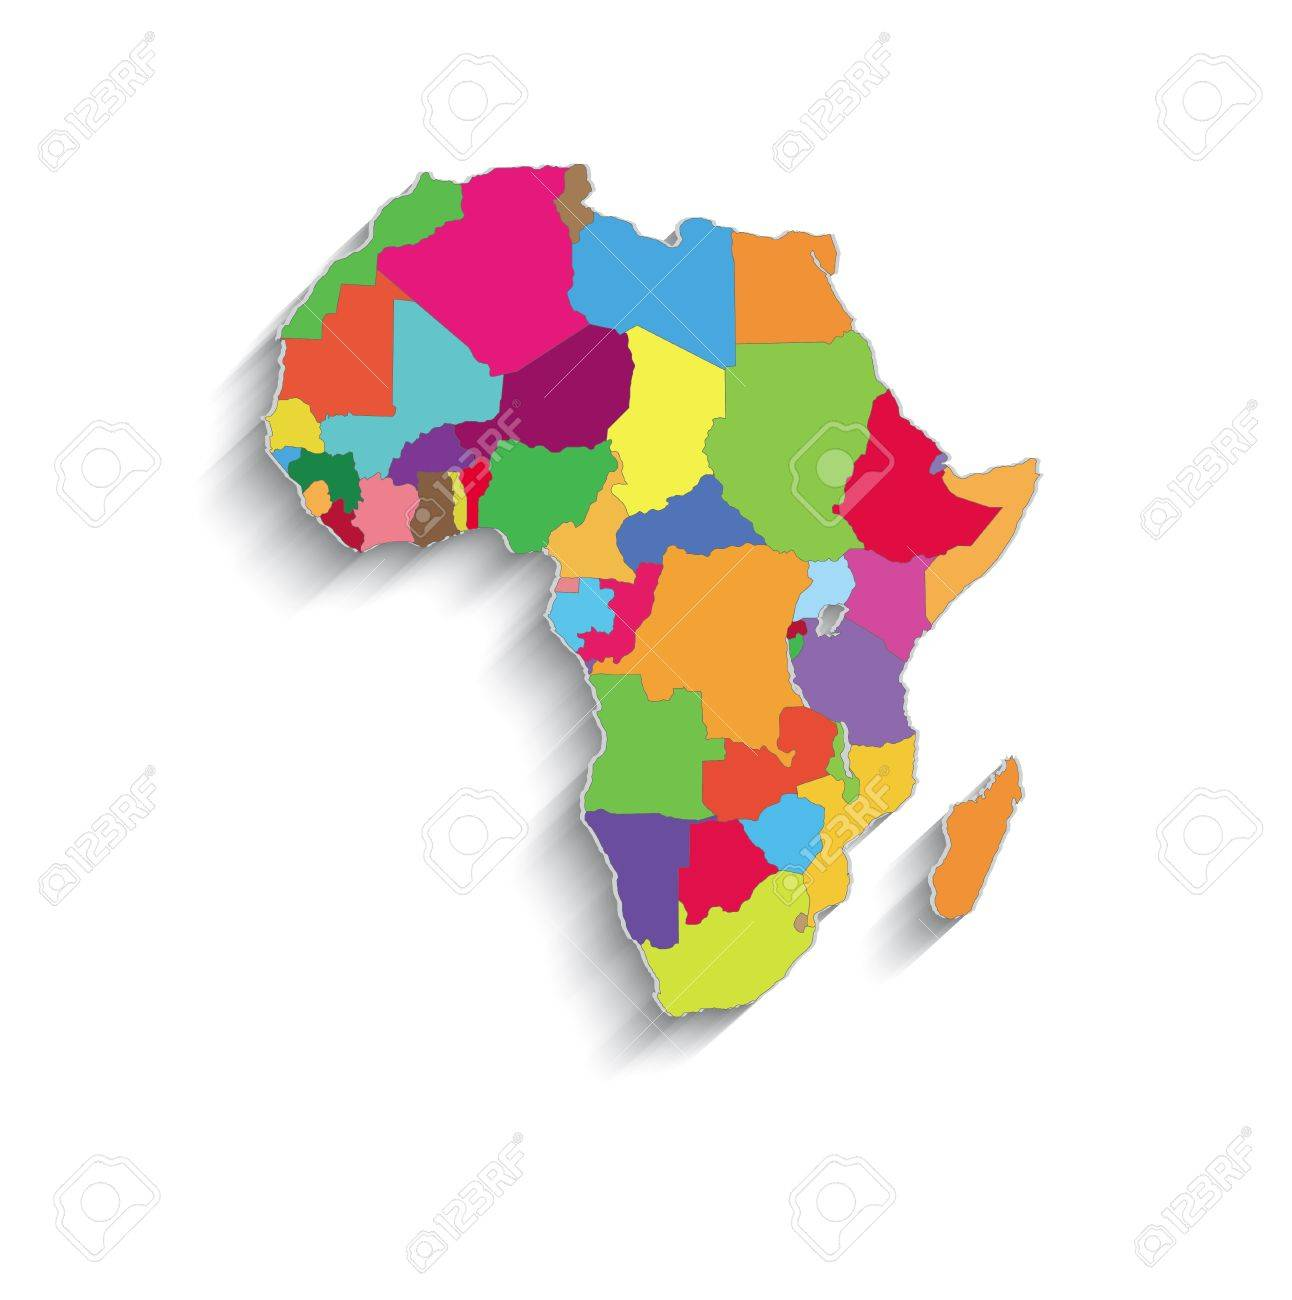 Raster Africa Political Colors Map Paper 3D Individual States     raster Africa political colors map paper 3D individual states puzzle Stock  Photo   22643251